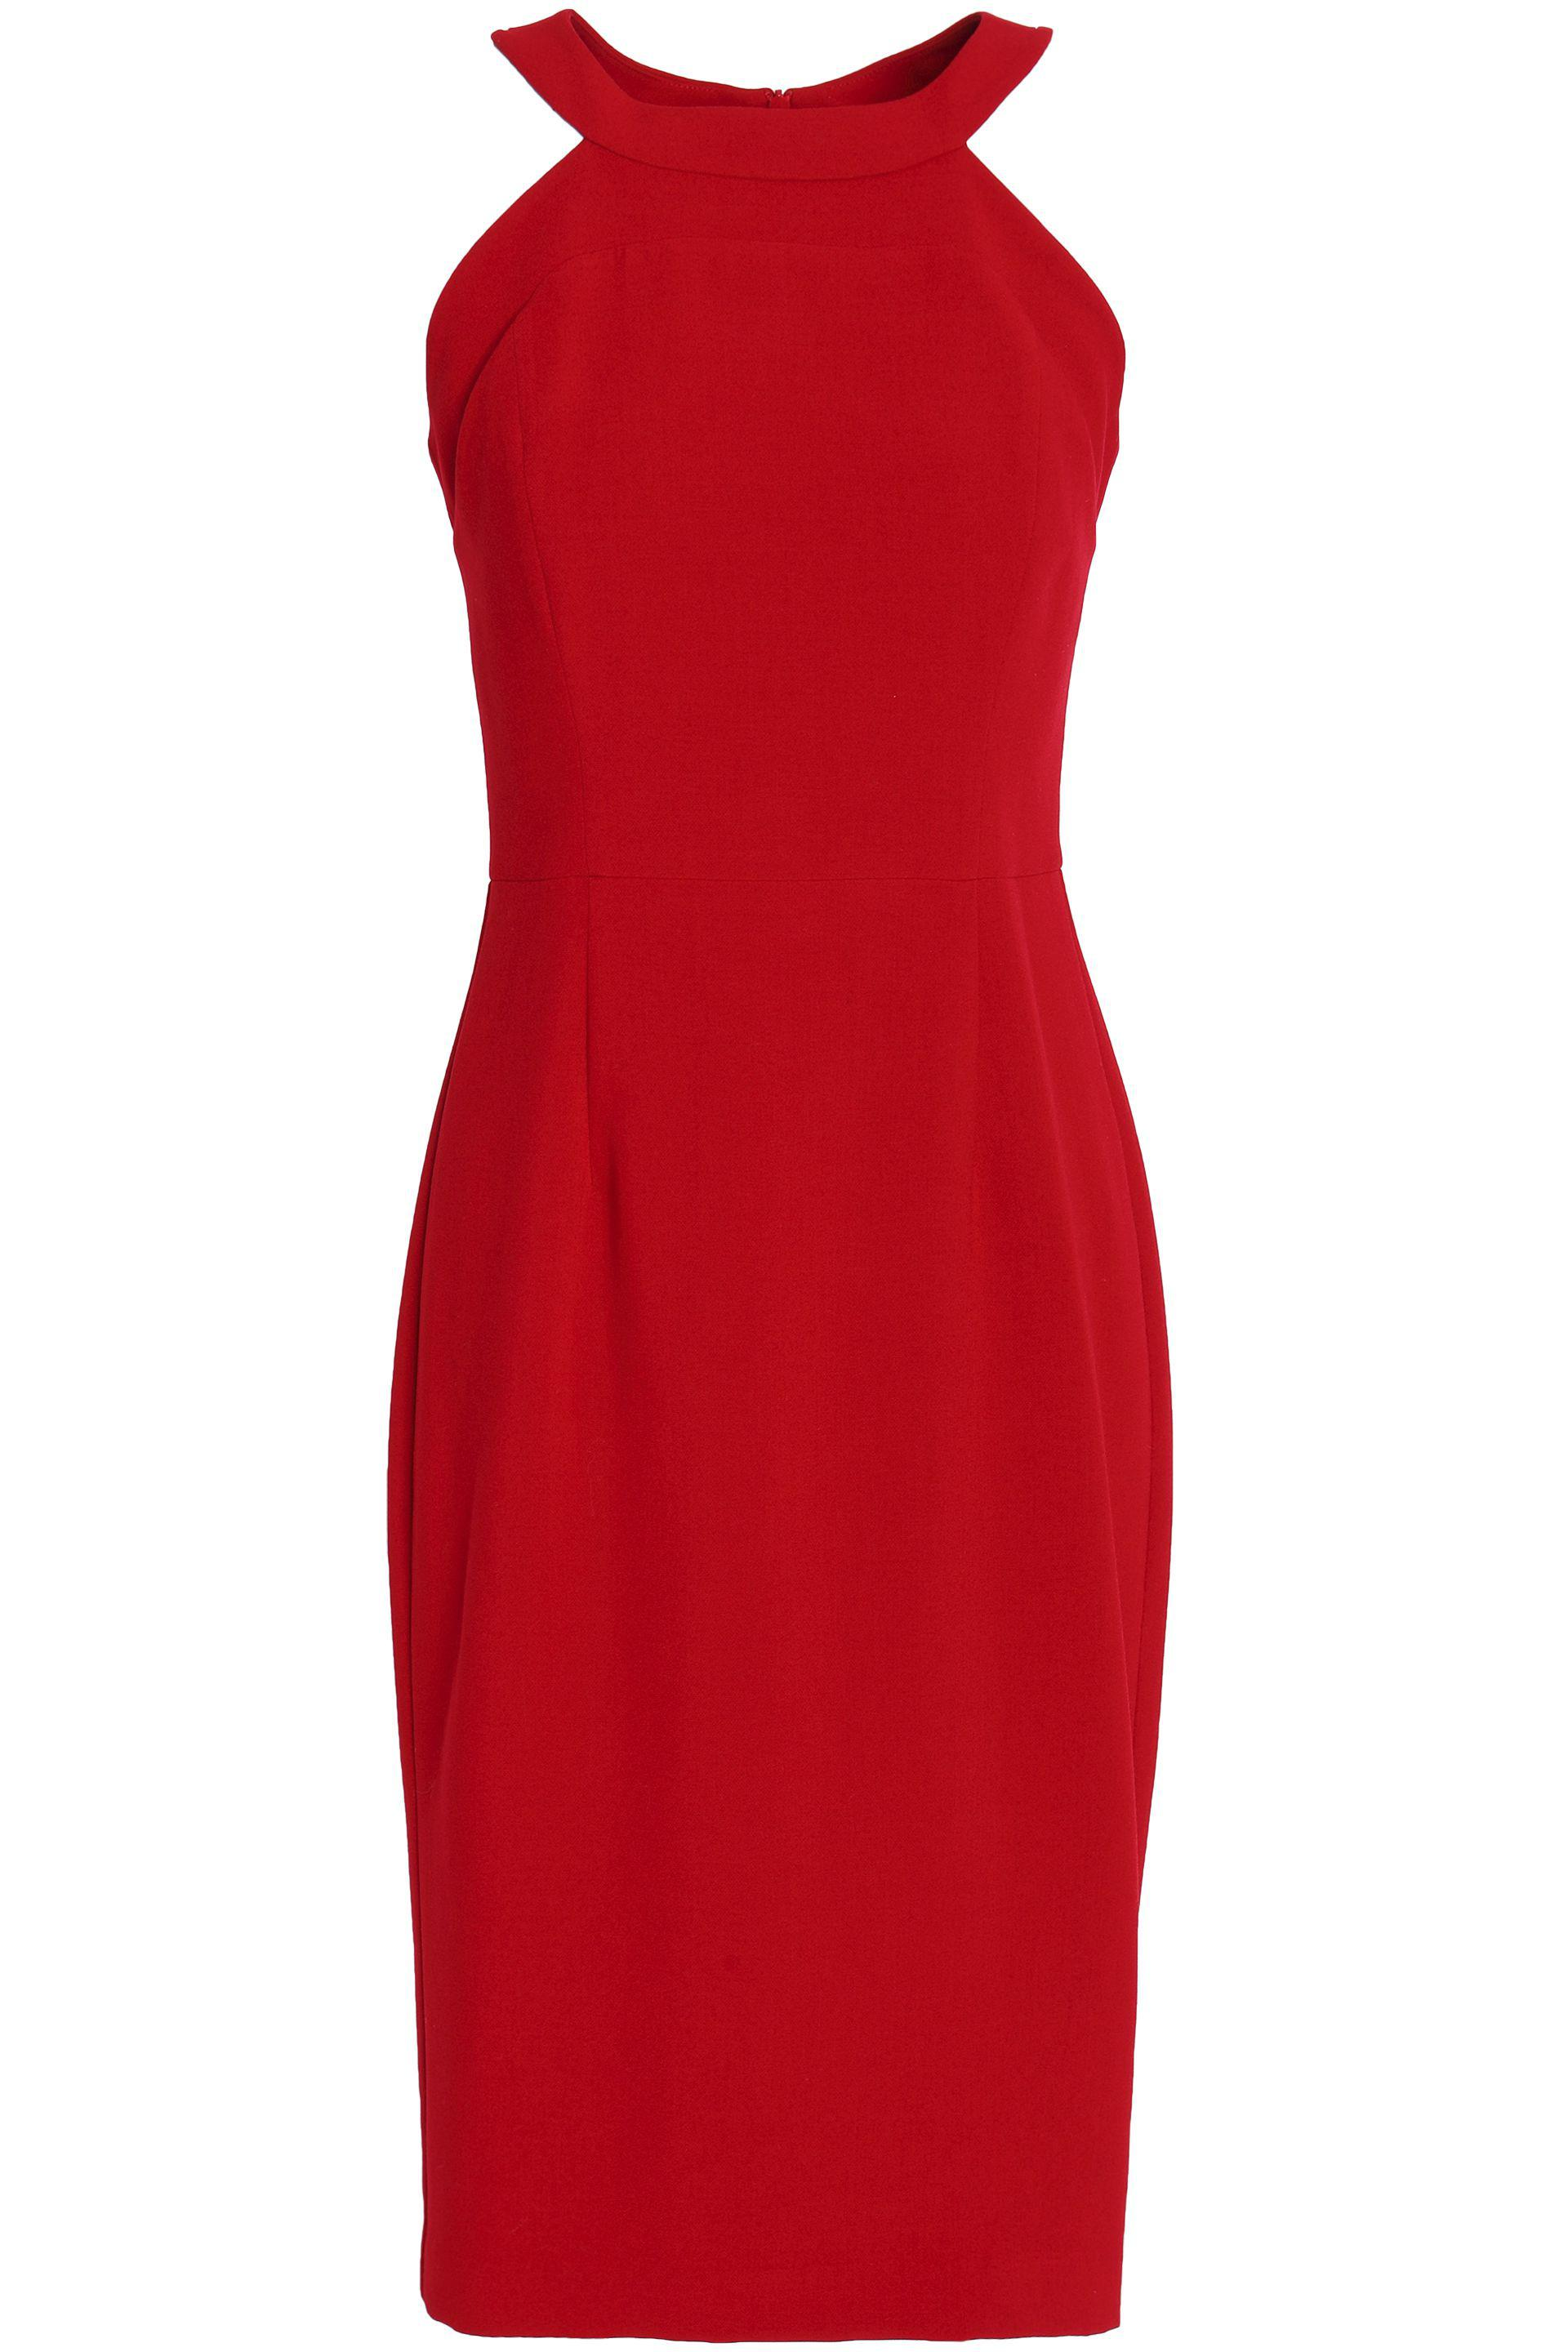 668a9dc2 Lyst - Black Halo Marcelle Ponte Dress in Red